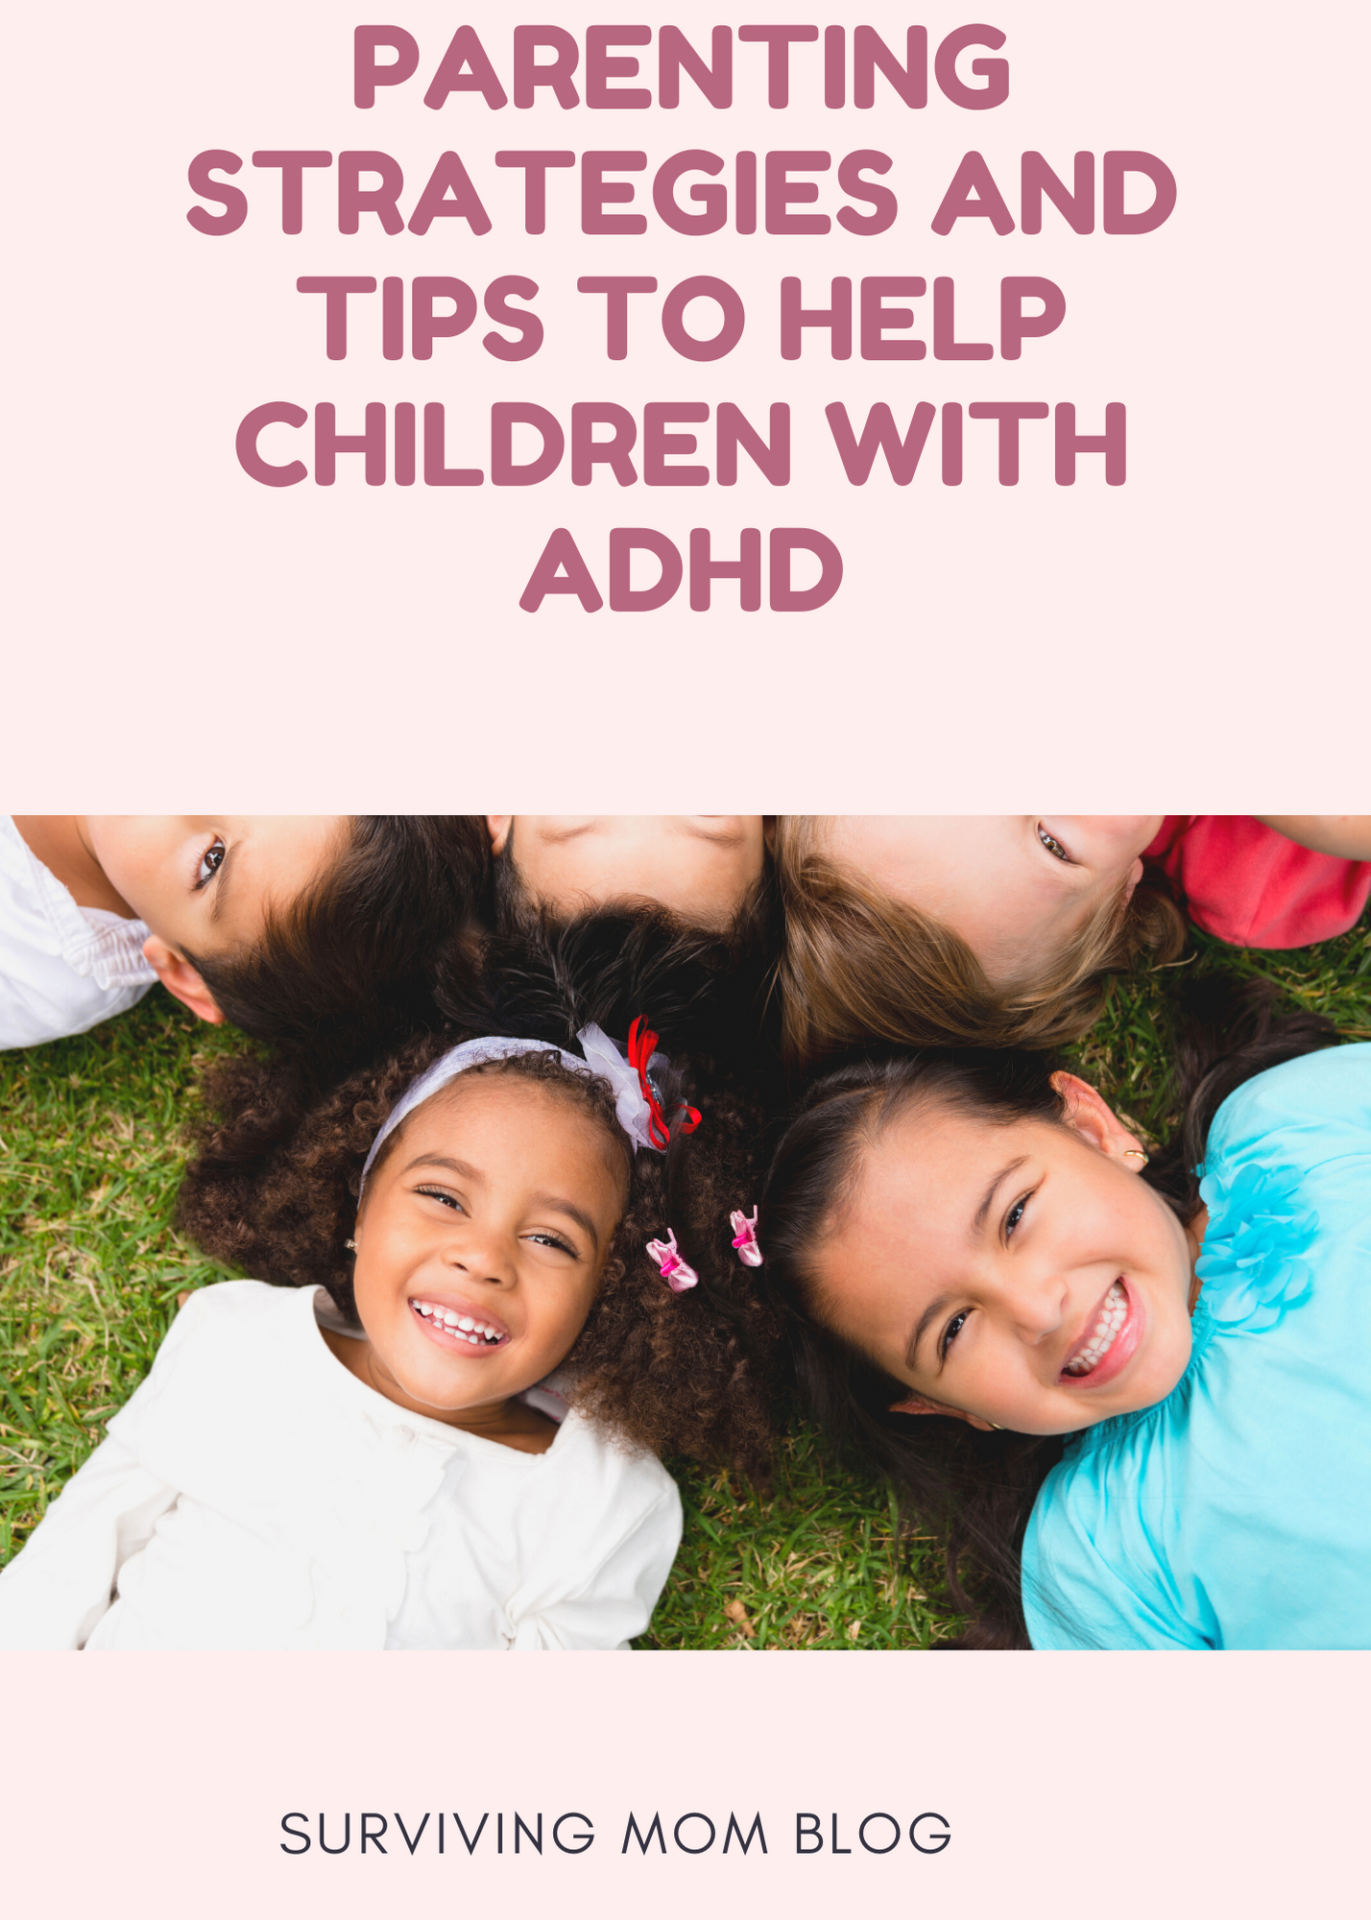 Parenting Strategies and Tips to Help Children with ADHD